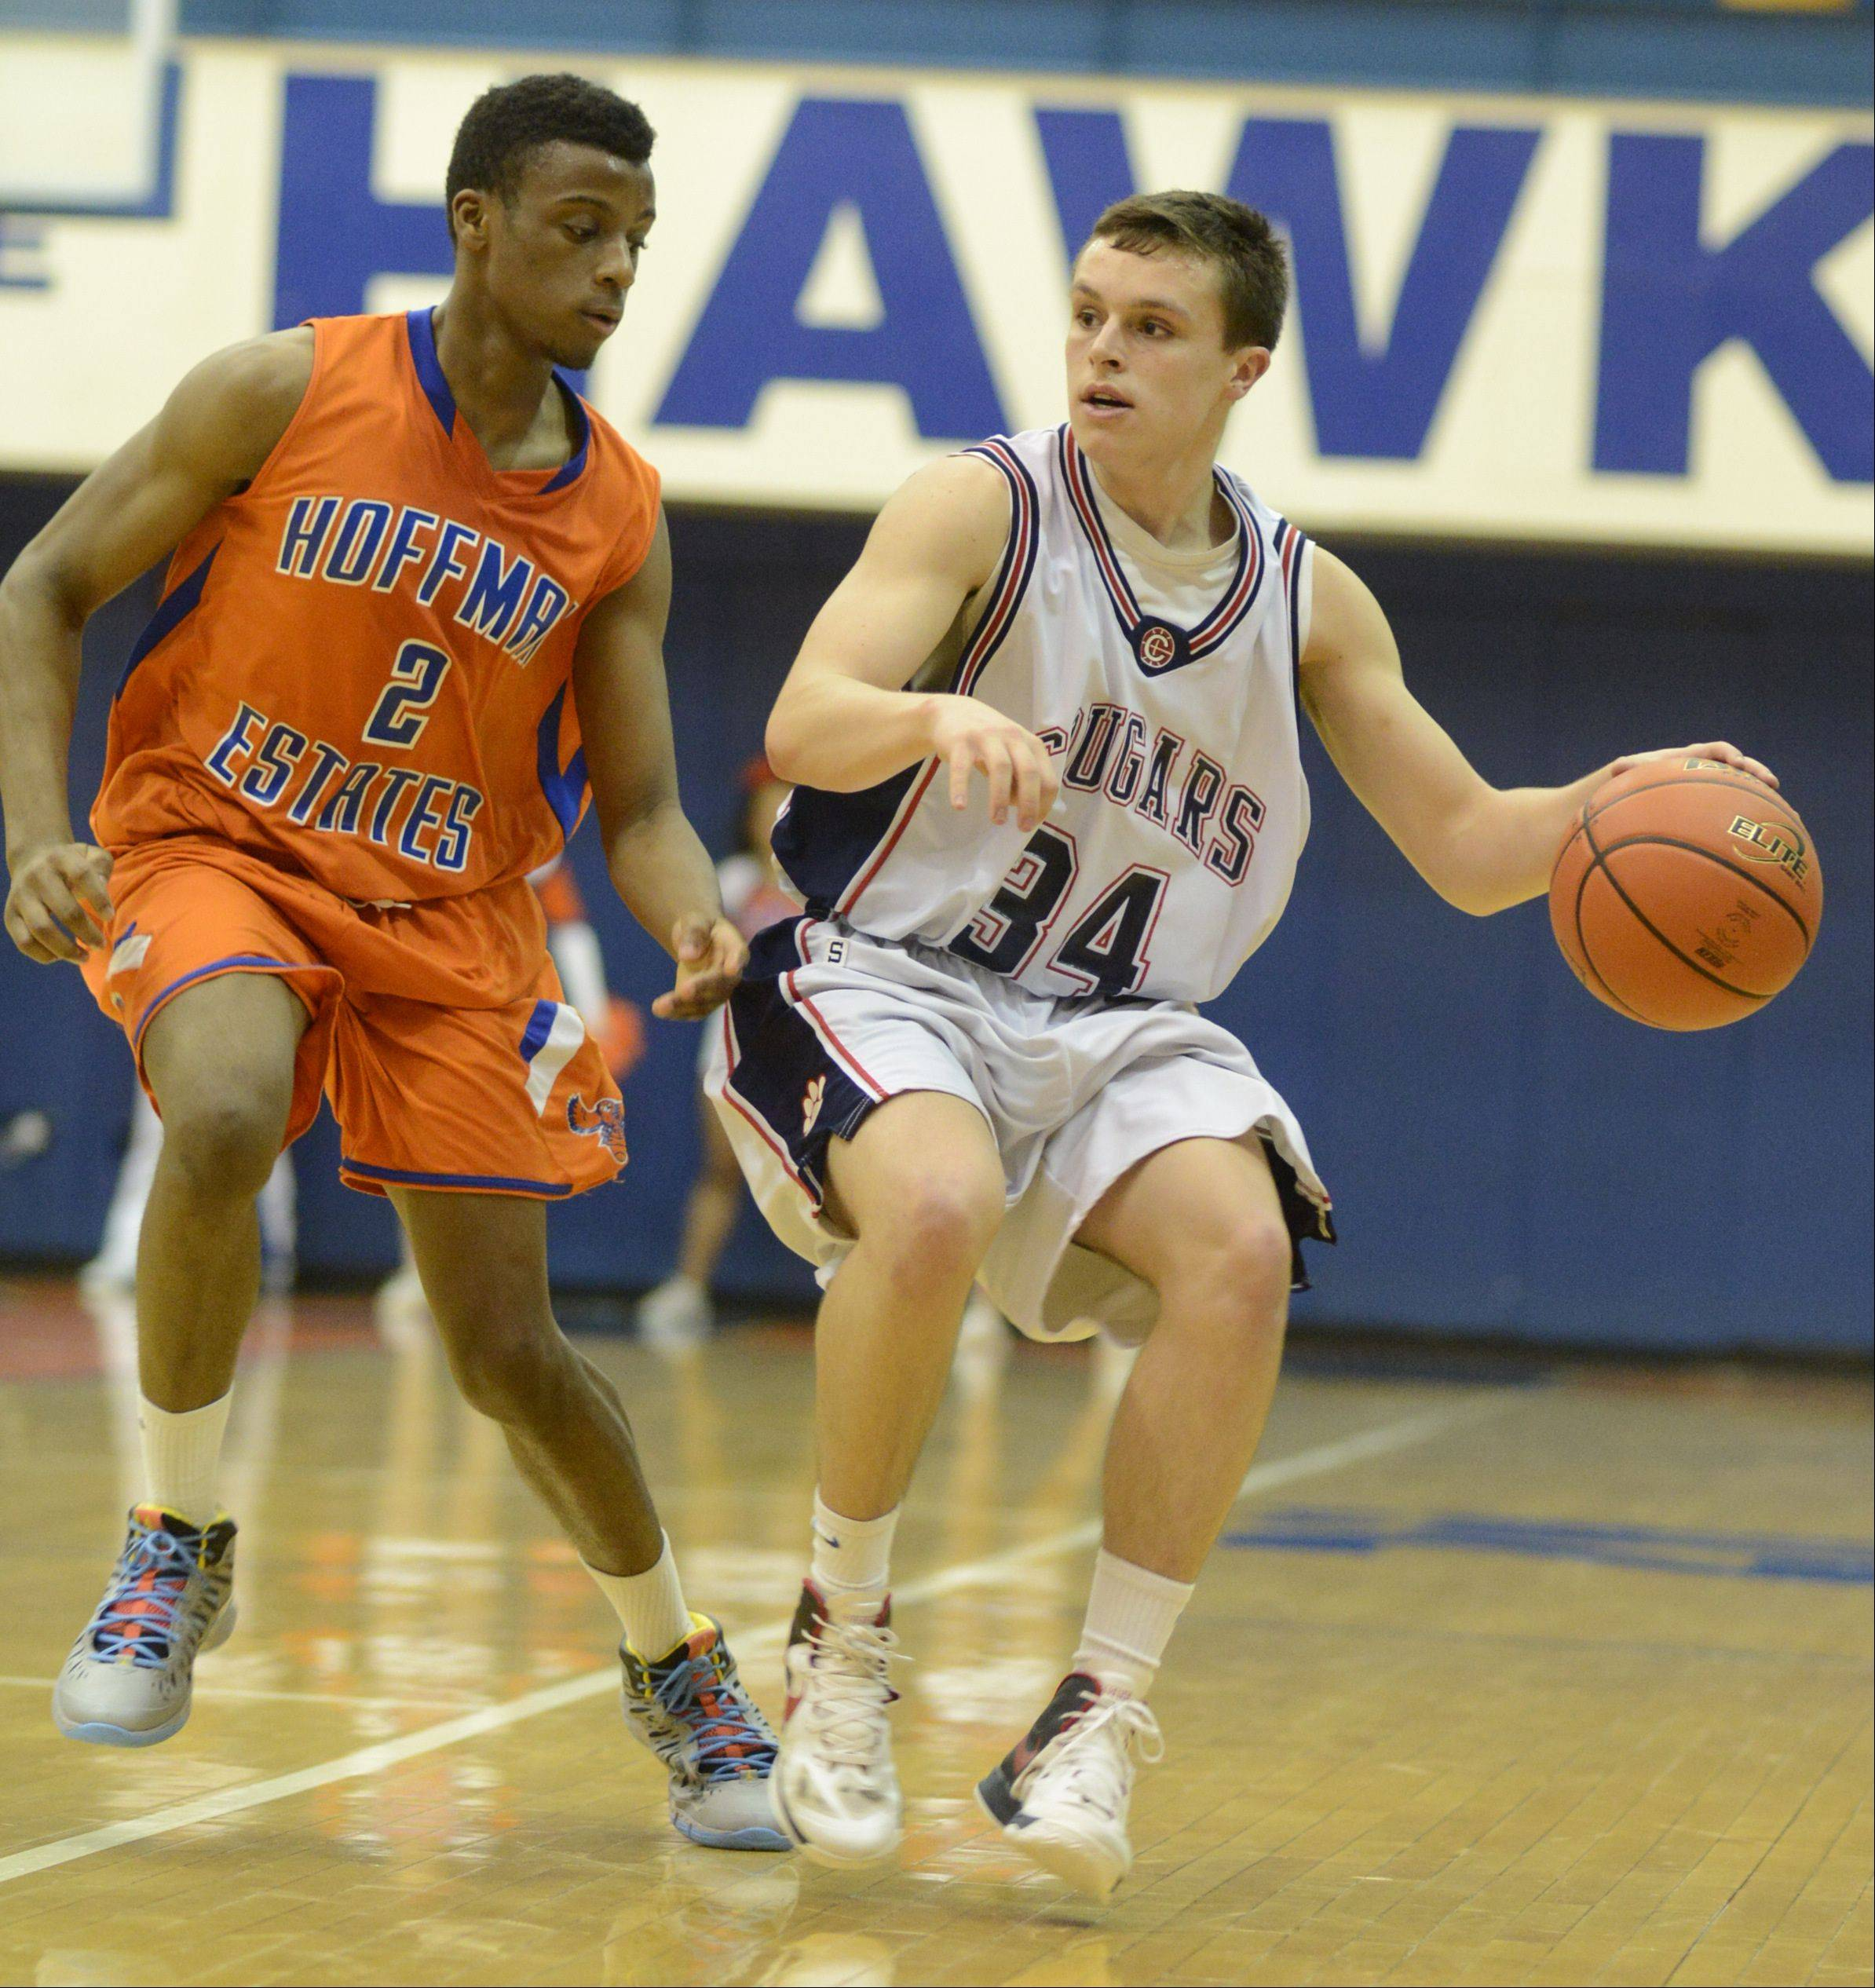 Images from the Conant vs. Hoffman Estates boys basketball game on Wednesday, February 27th, at Hoffman Estates High School.